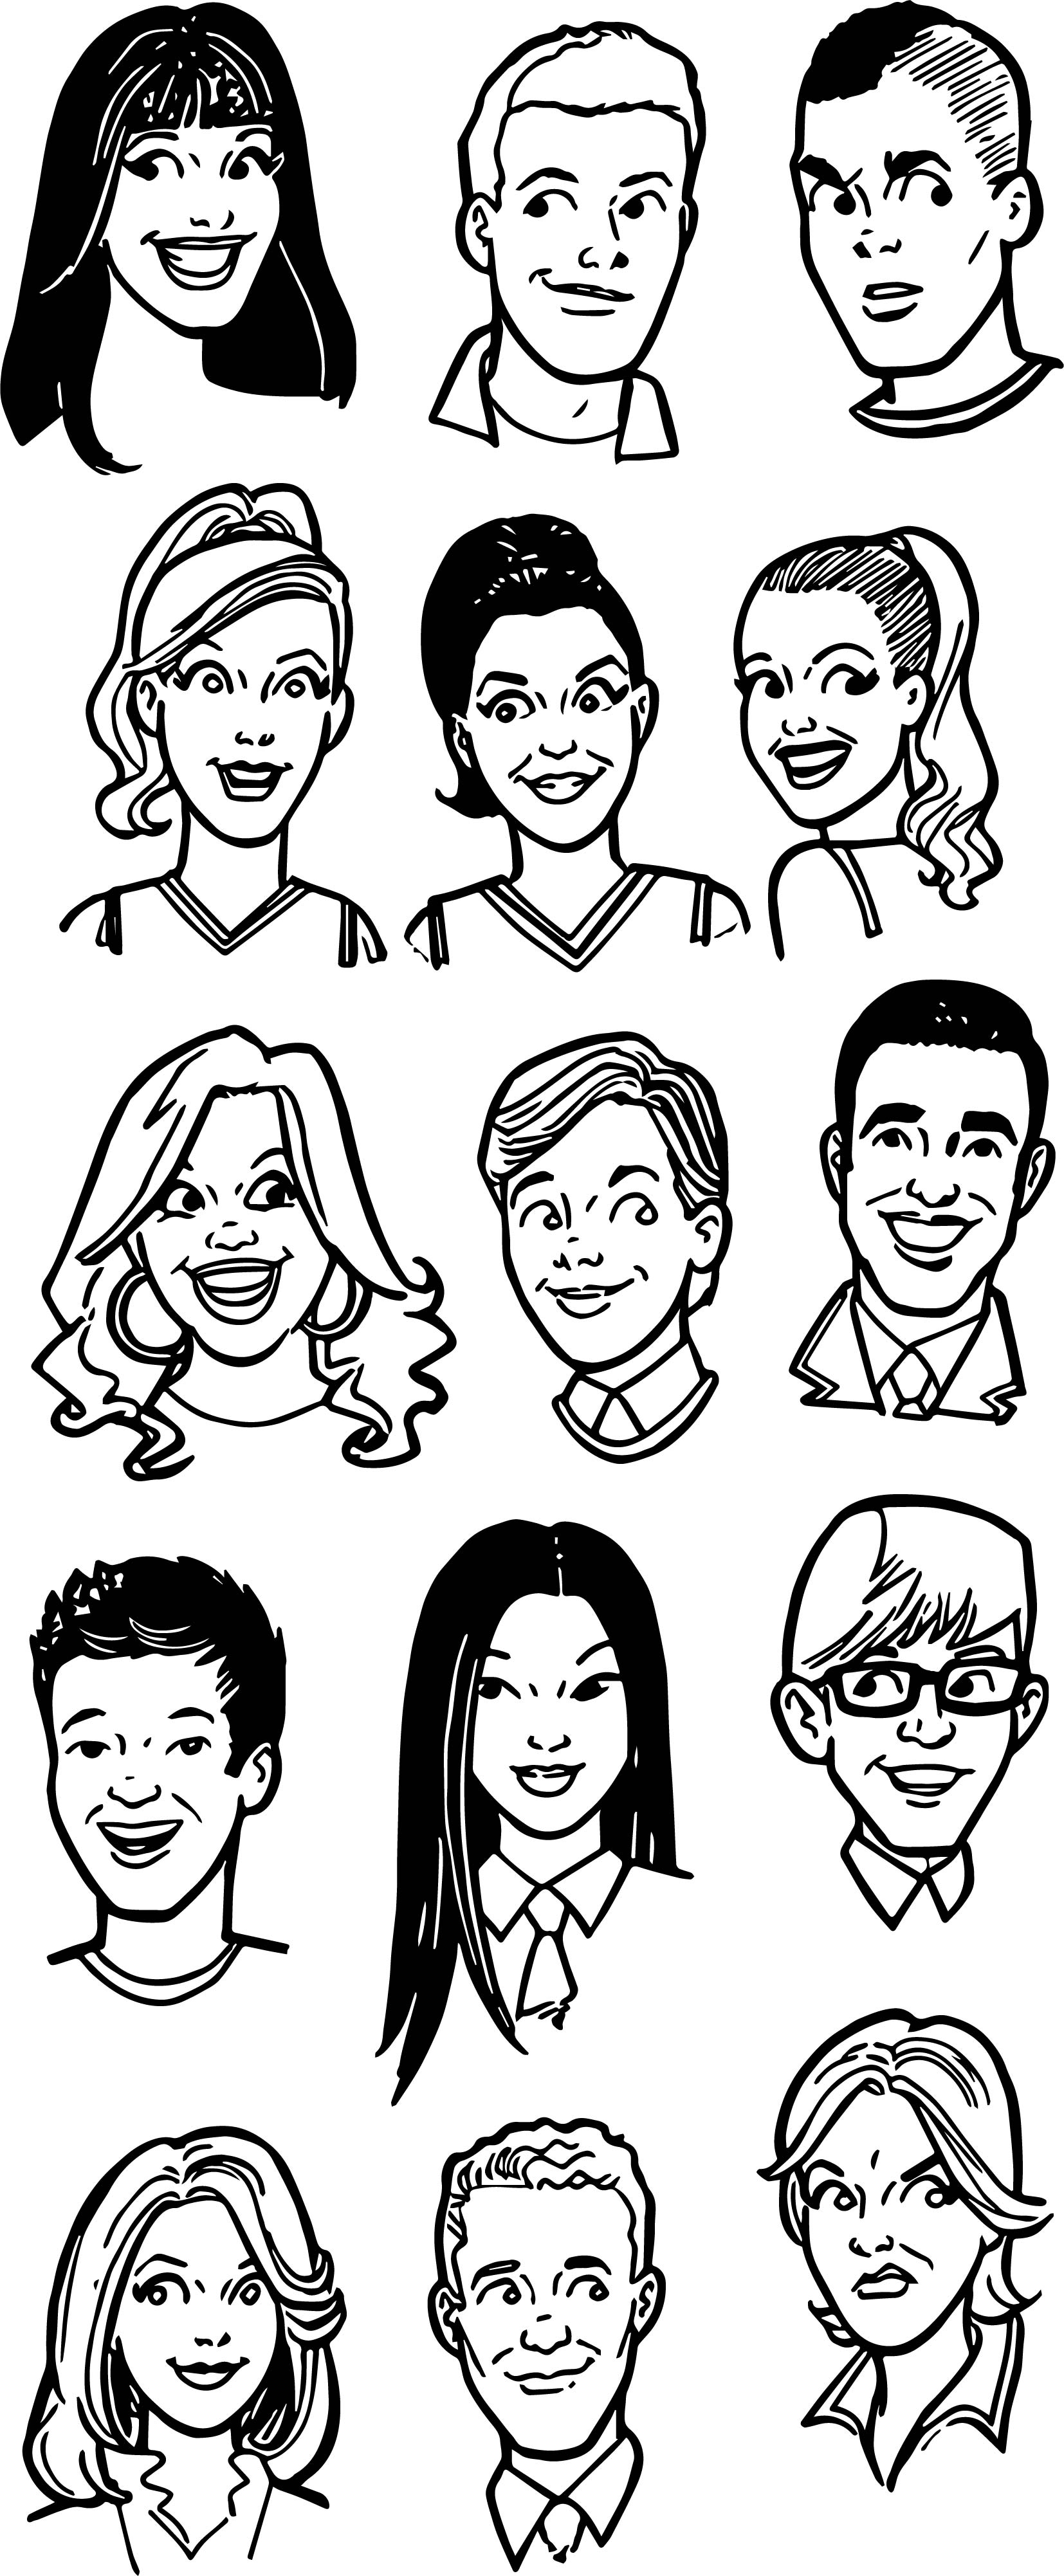 Glee Archie Faces Coloring Page